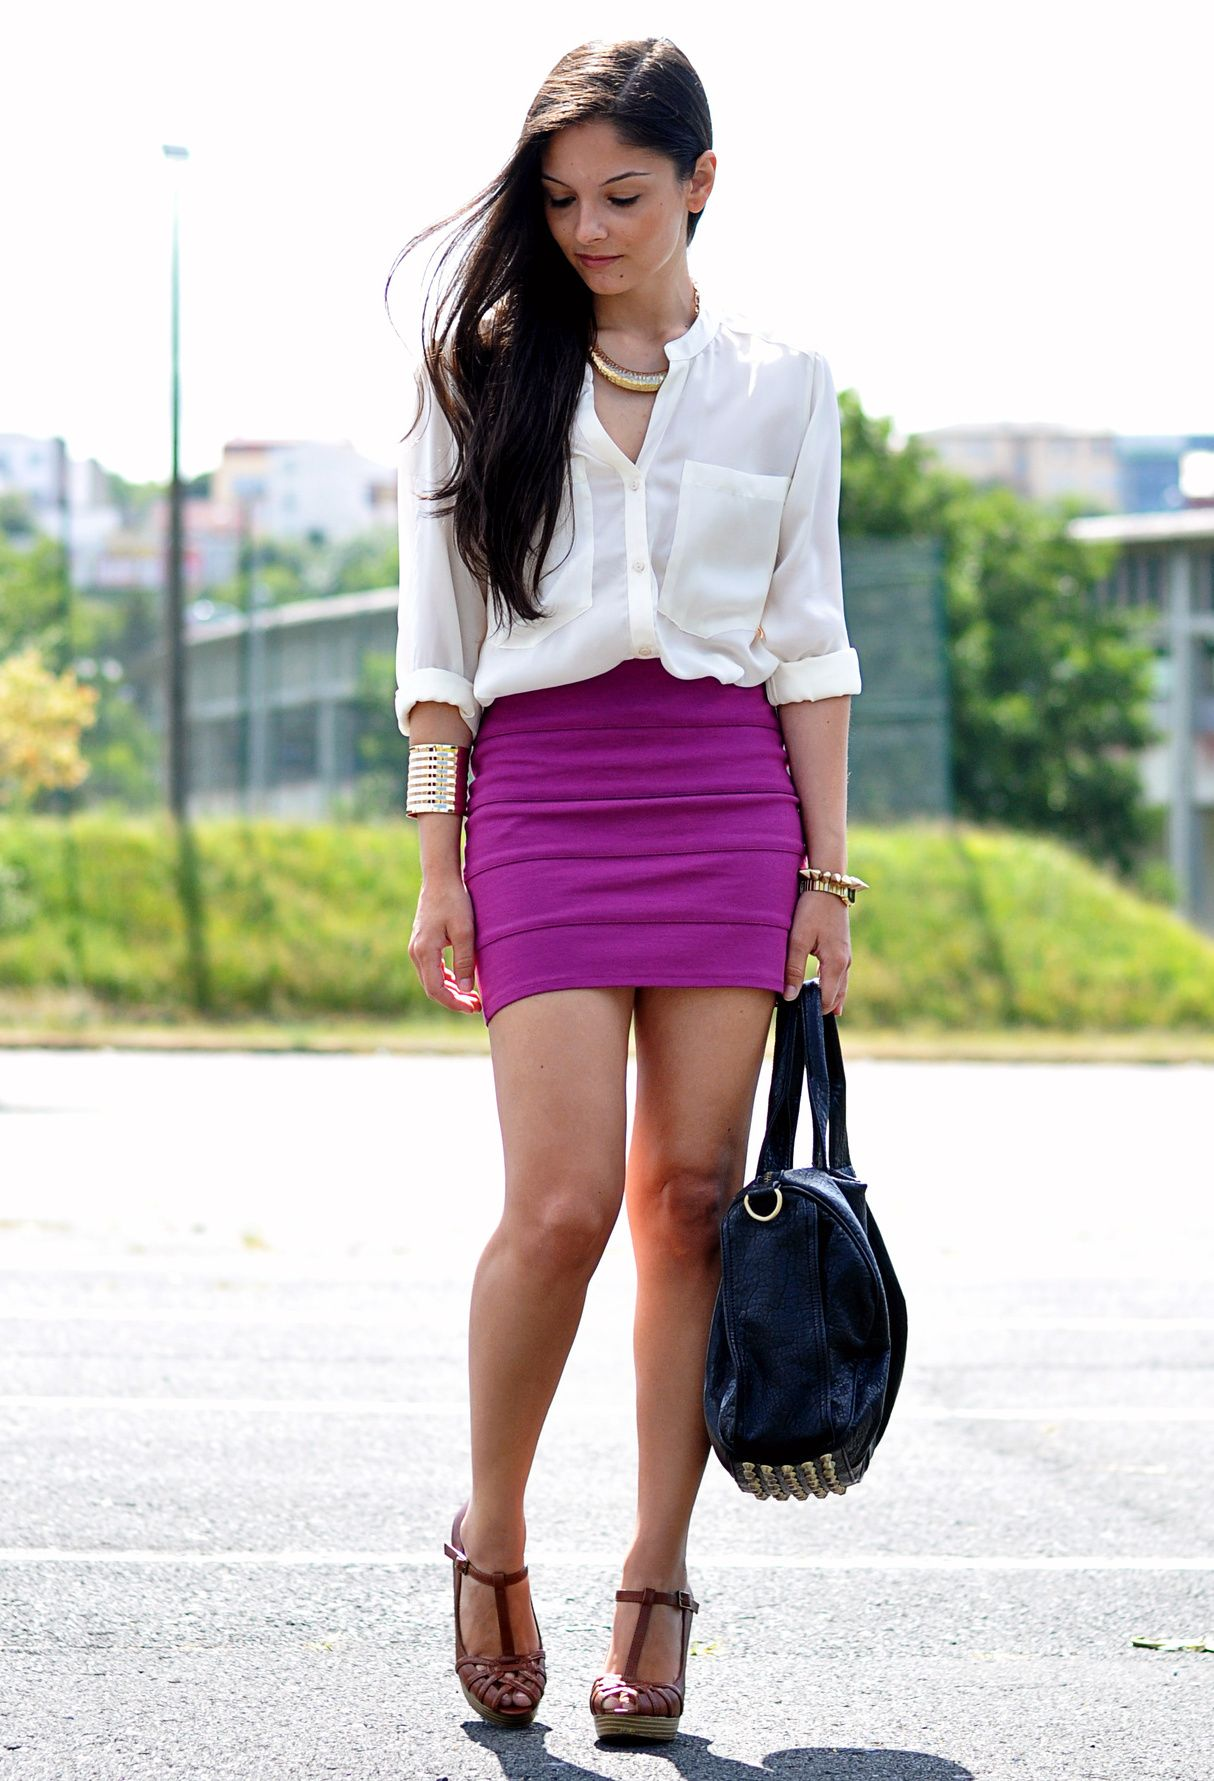 Skirt pencil outfits for teenagers photo